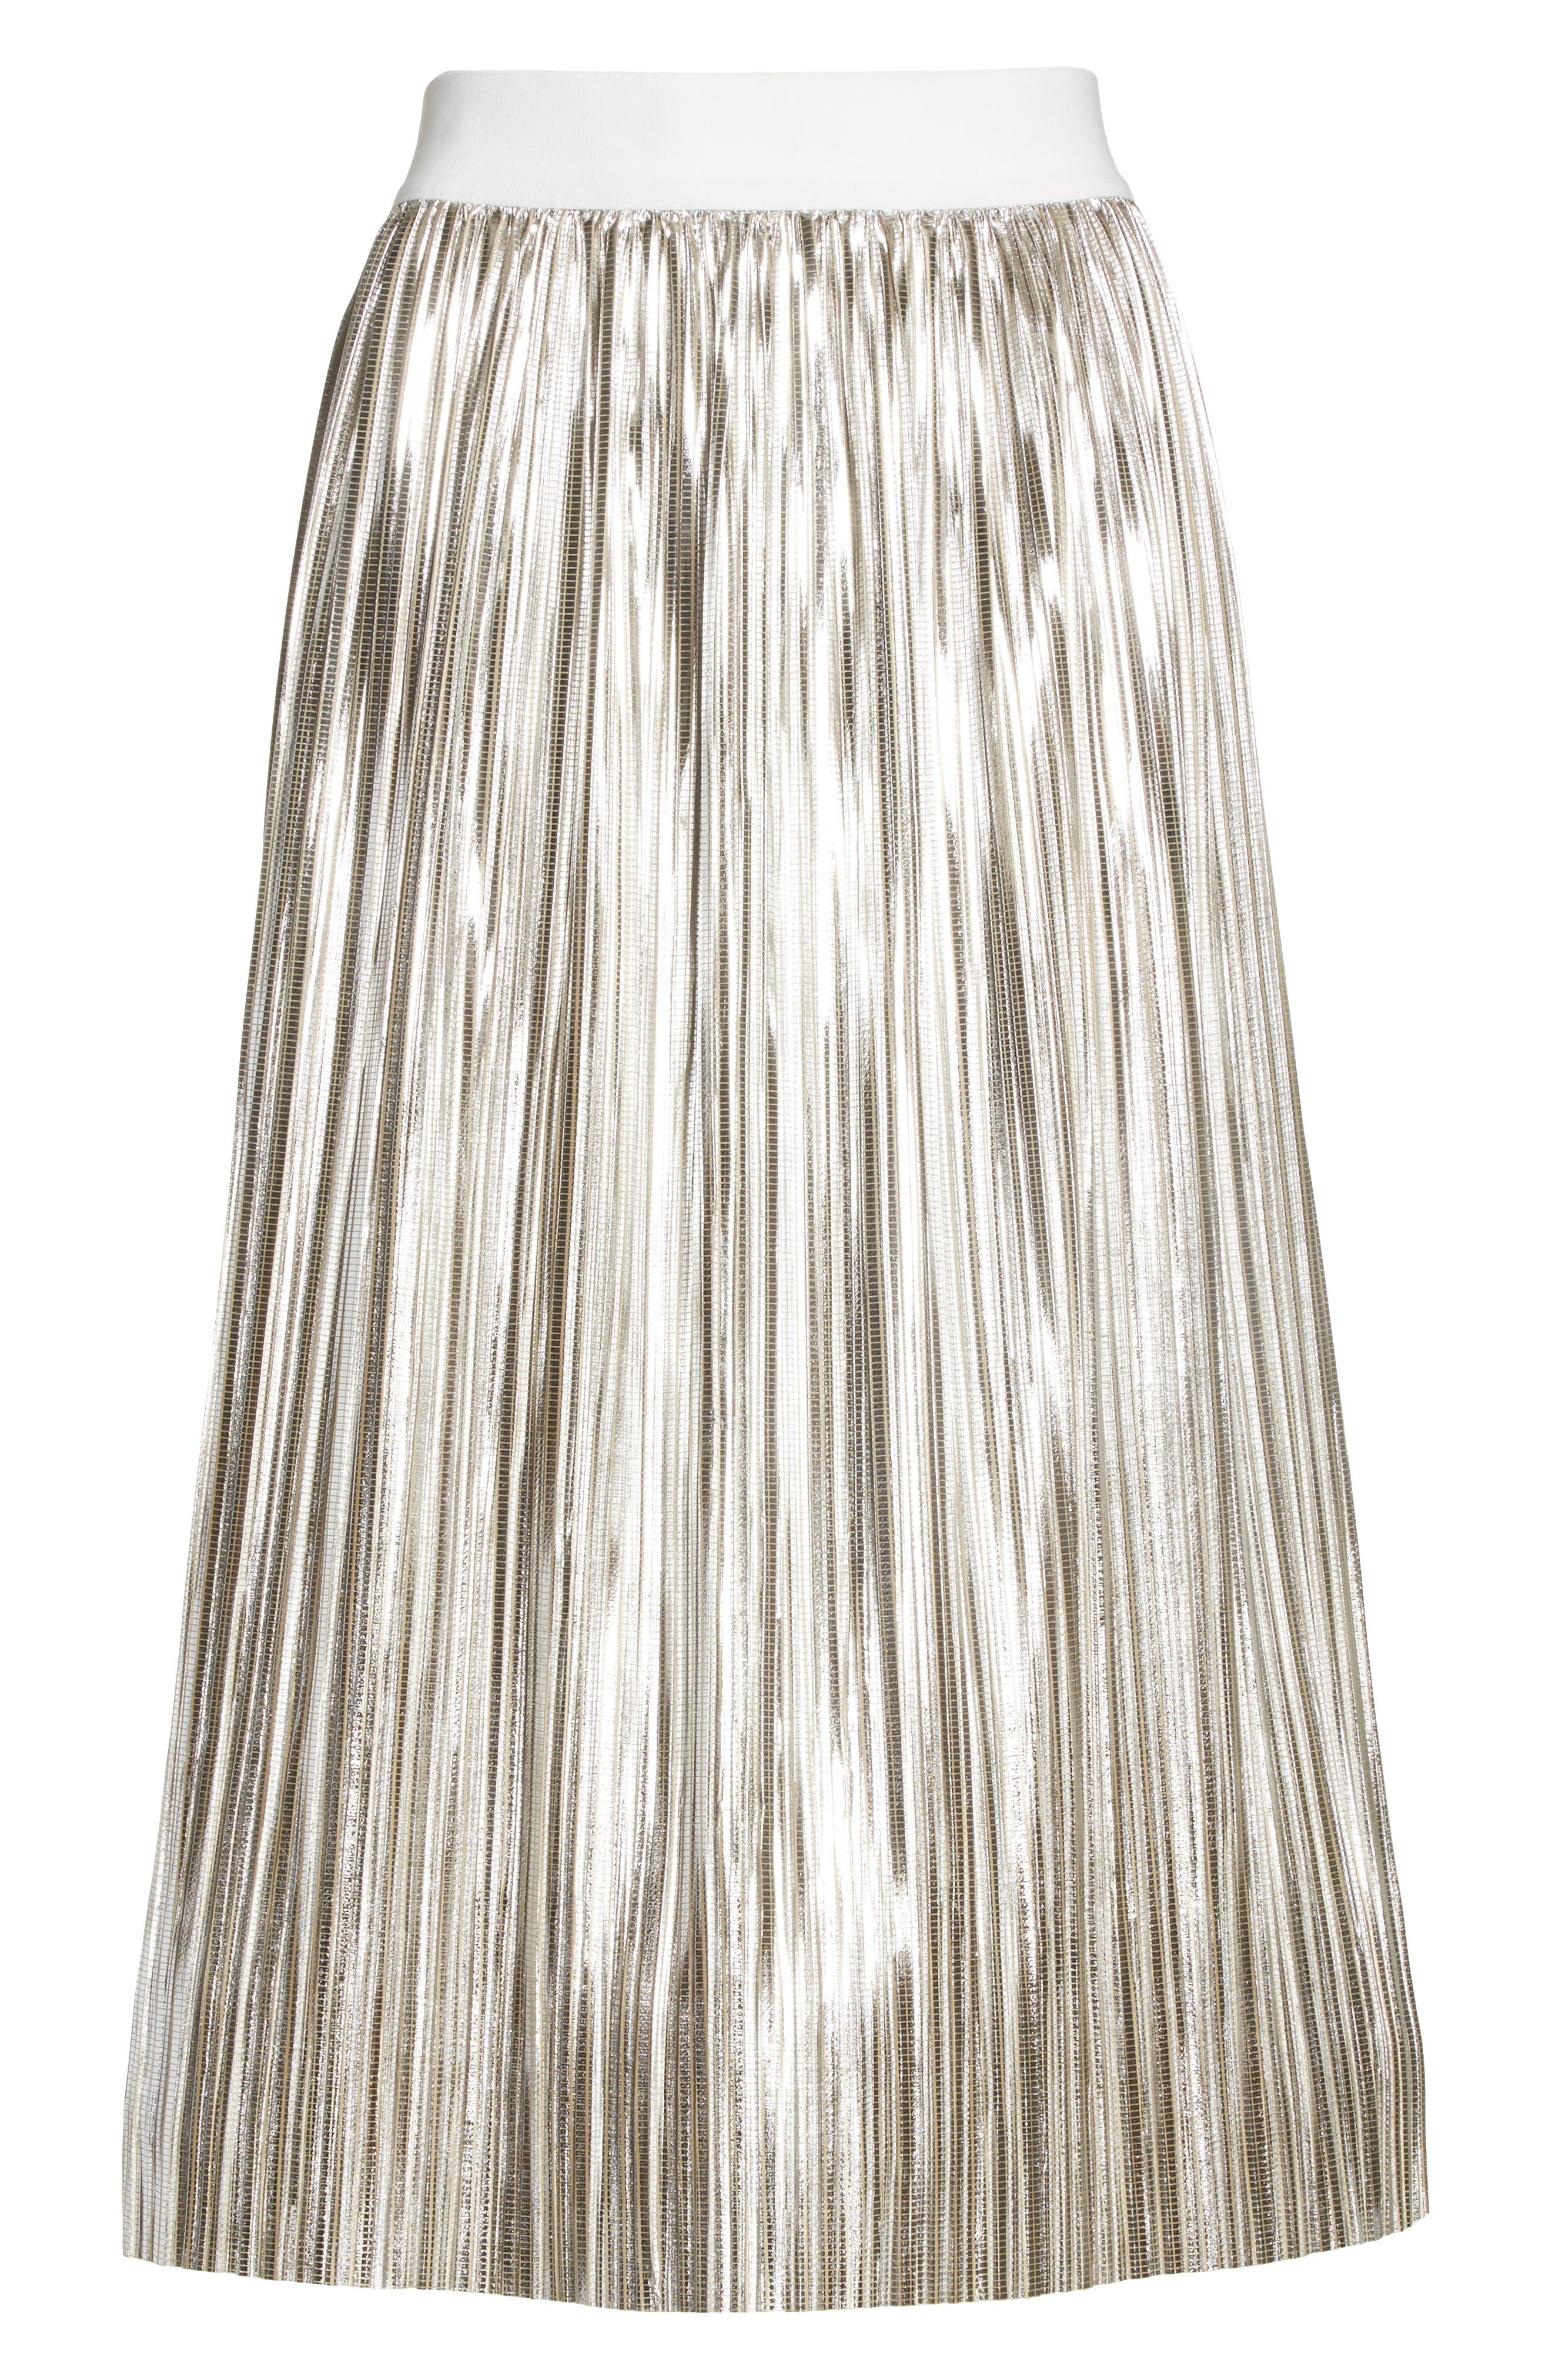 Mikaela Pleat Metallic Skirt,                             Alternate thumbnail 6, color,                             Silver Metallic